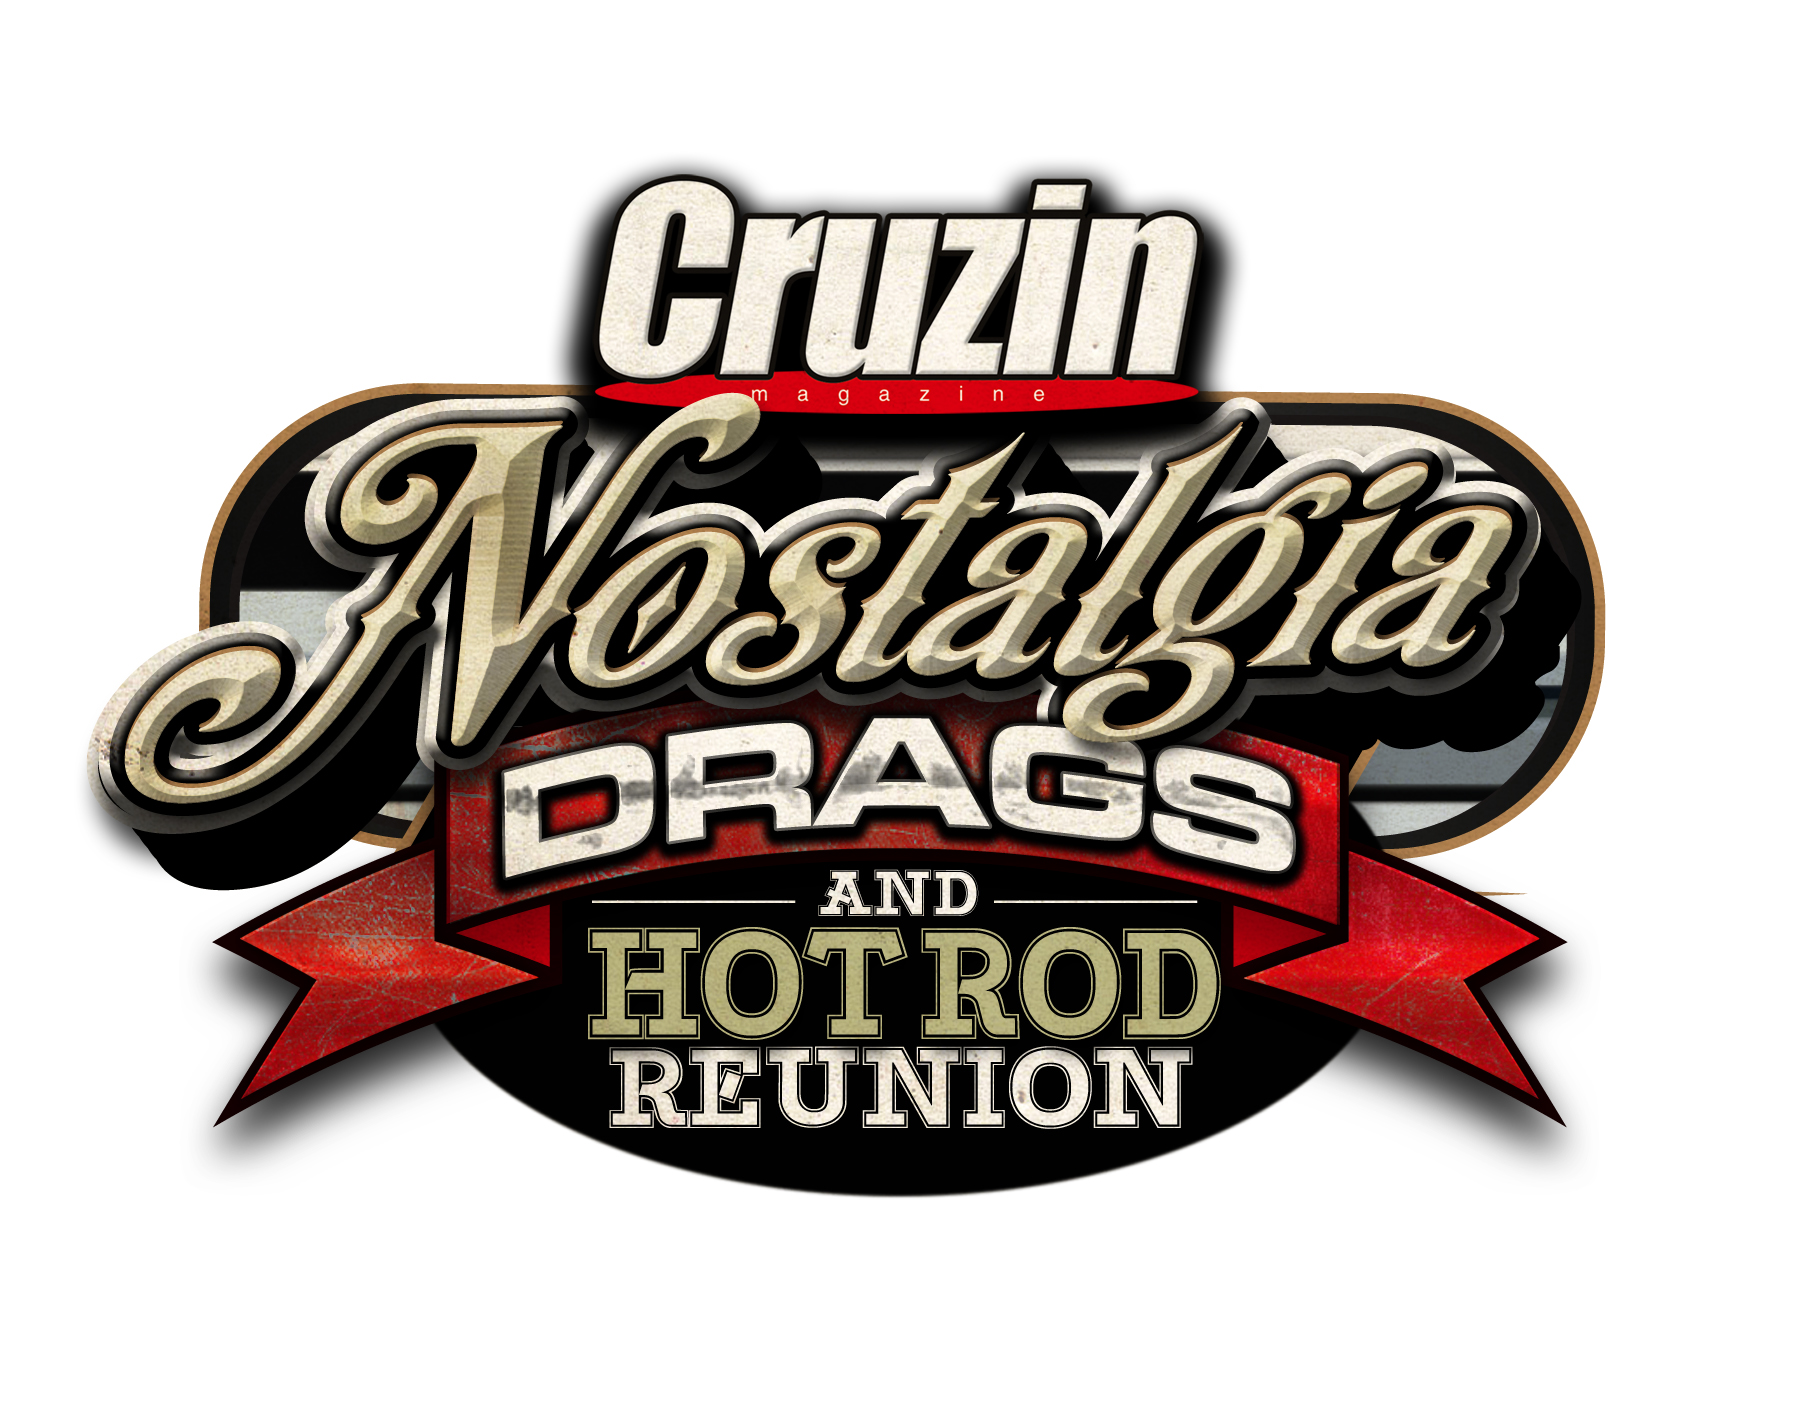 The new Cruzin' Magazine Nostalgia Drags and Hot Rod Reunion will visit Willowbank Raceway and Sydney Dragway in 2016